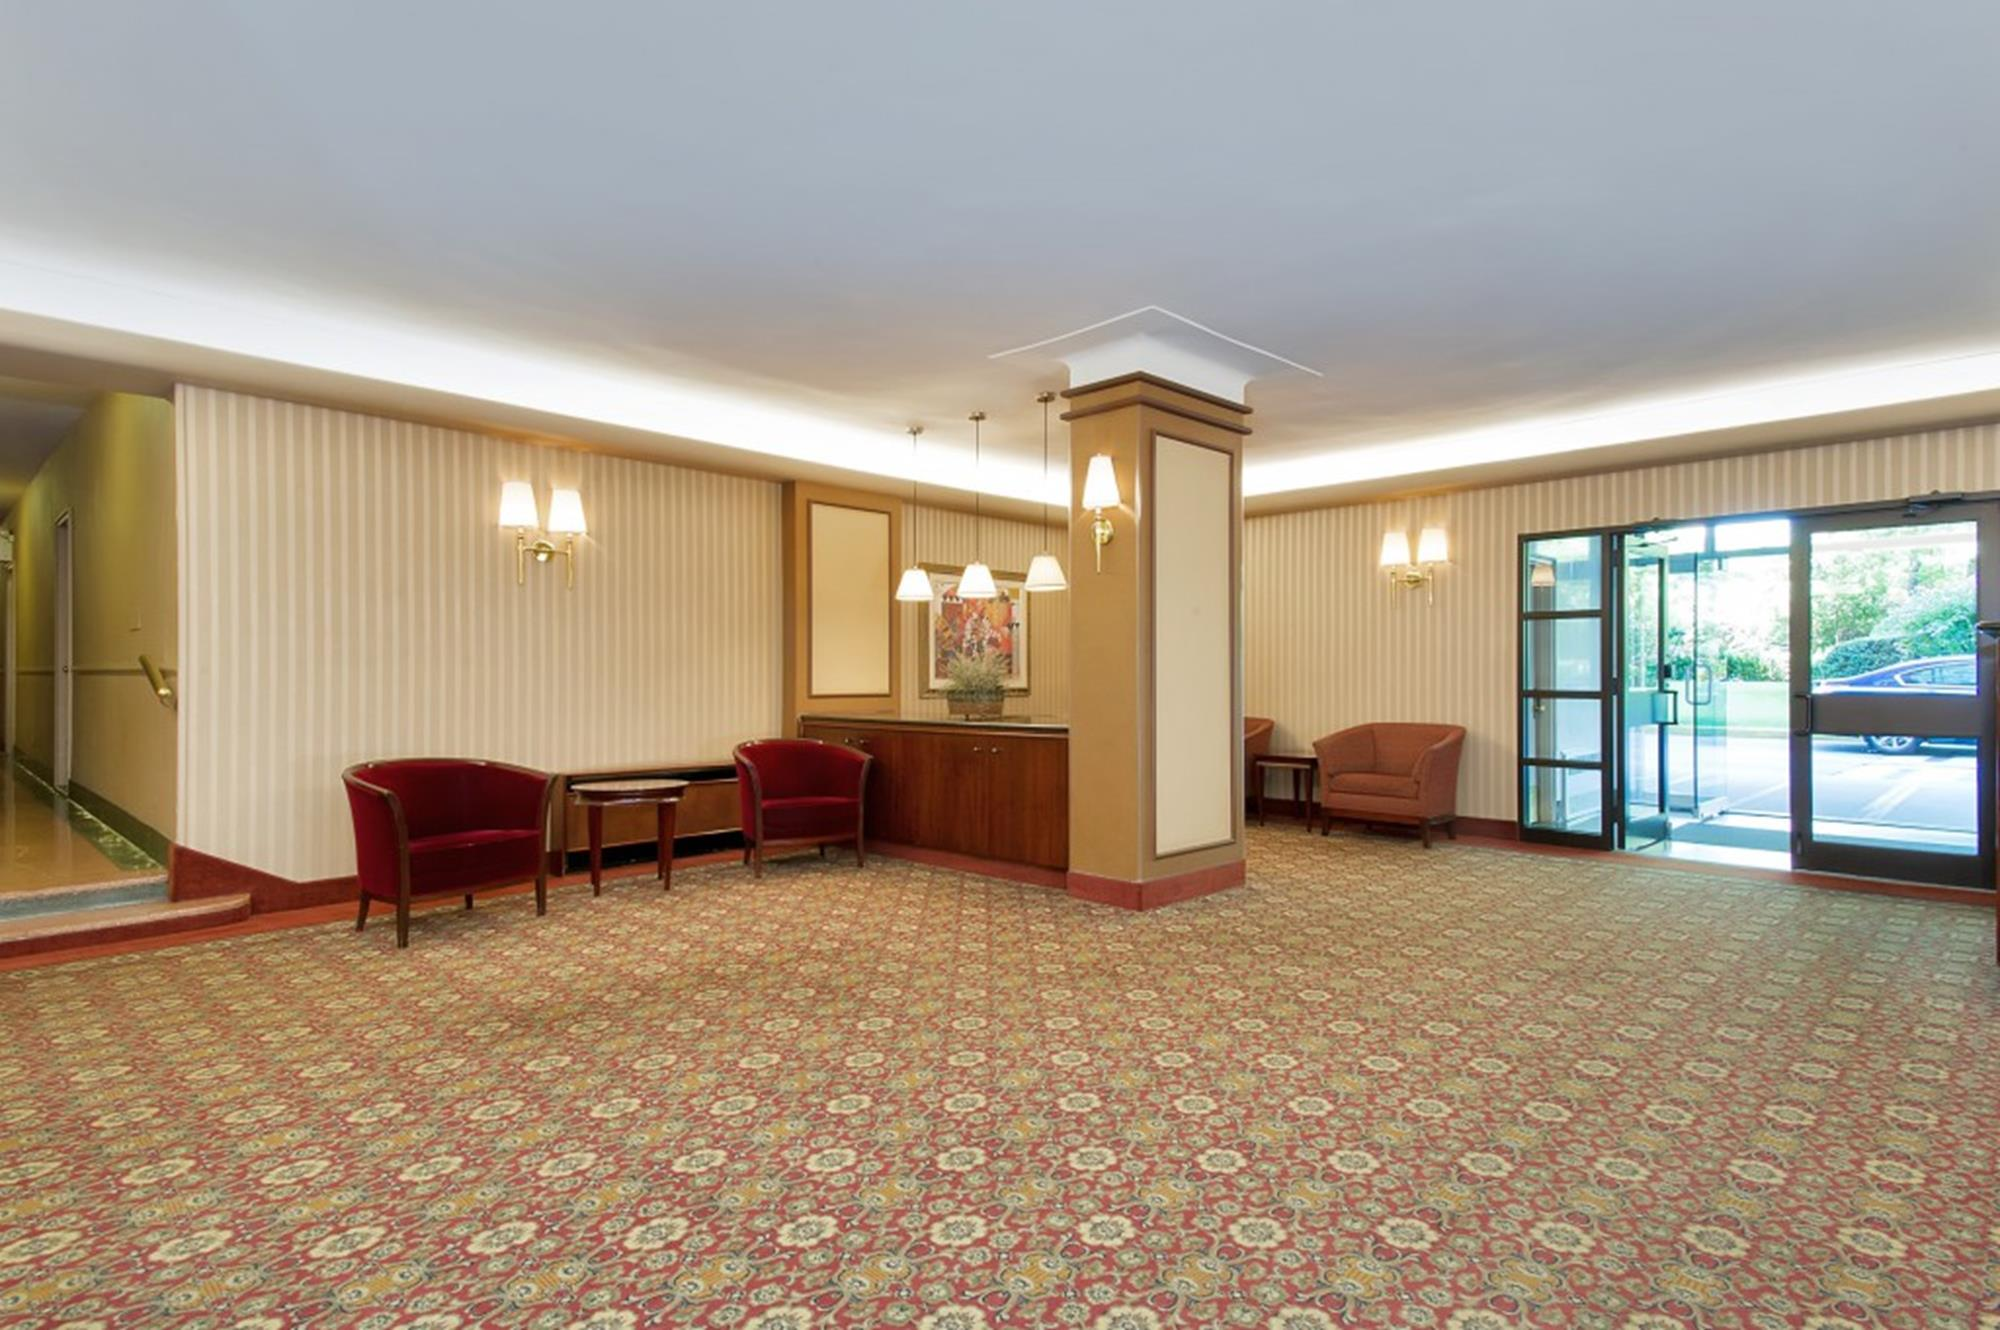 Spacious 2-Bd. (Convertible 3-Bd.) Co-op w/ Balcony & 24-hr. Doormen at Parkway House